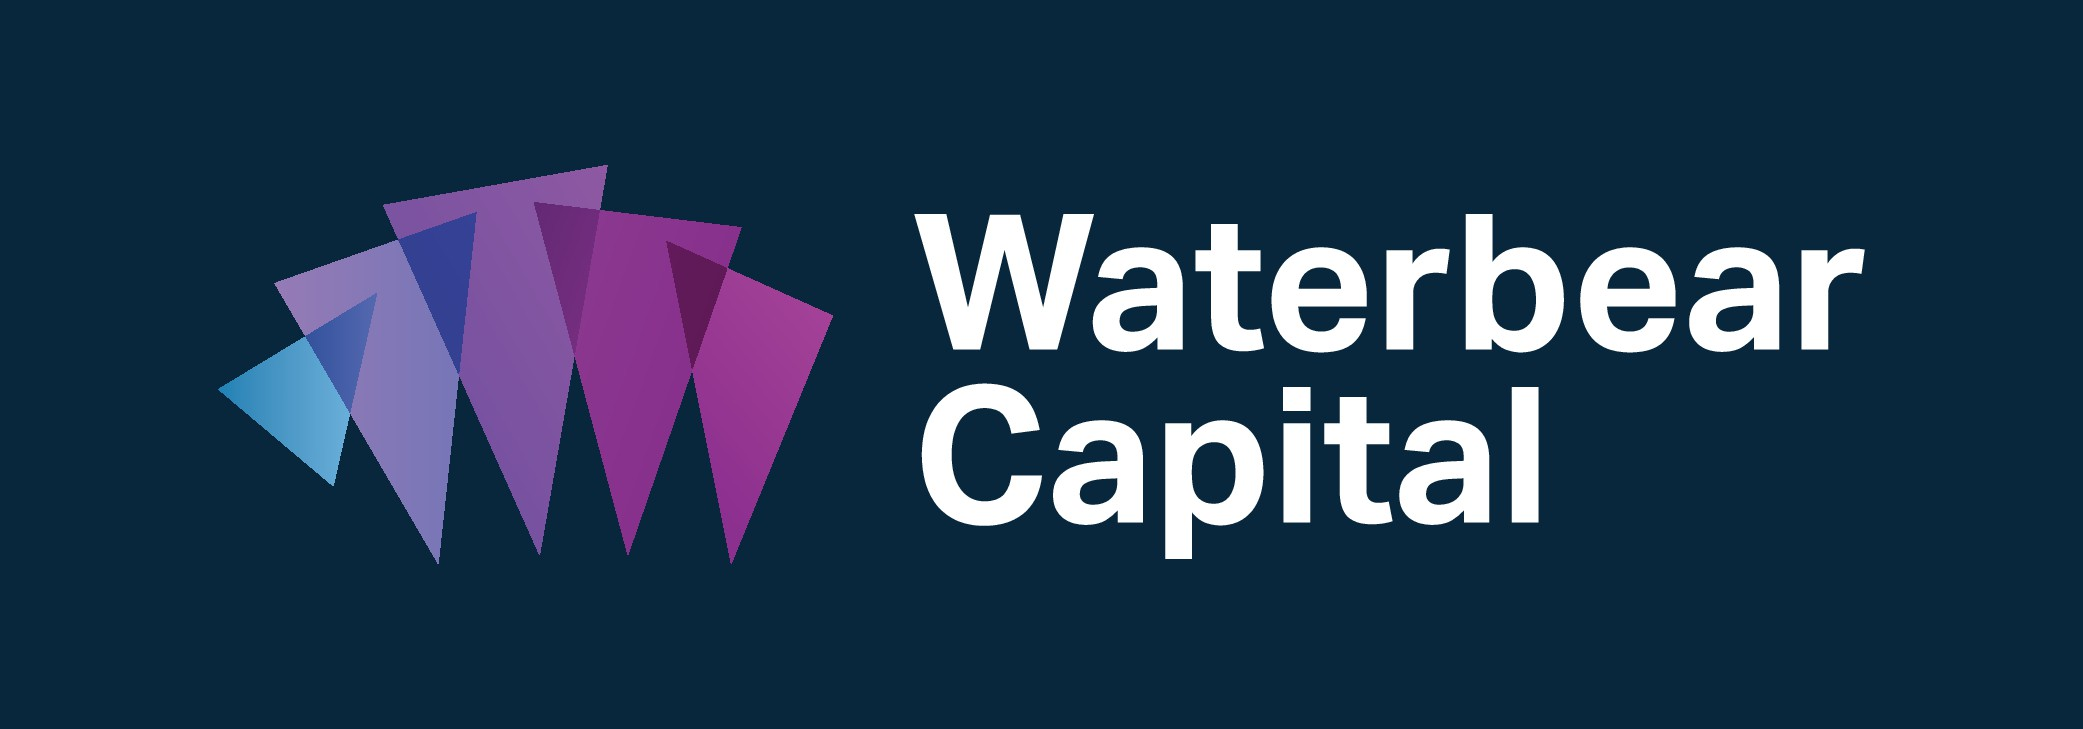 Waterbear Ventures needs a brand to resonate with founders who are inventing the future